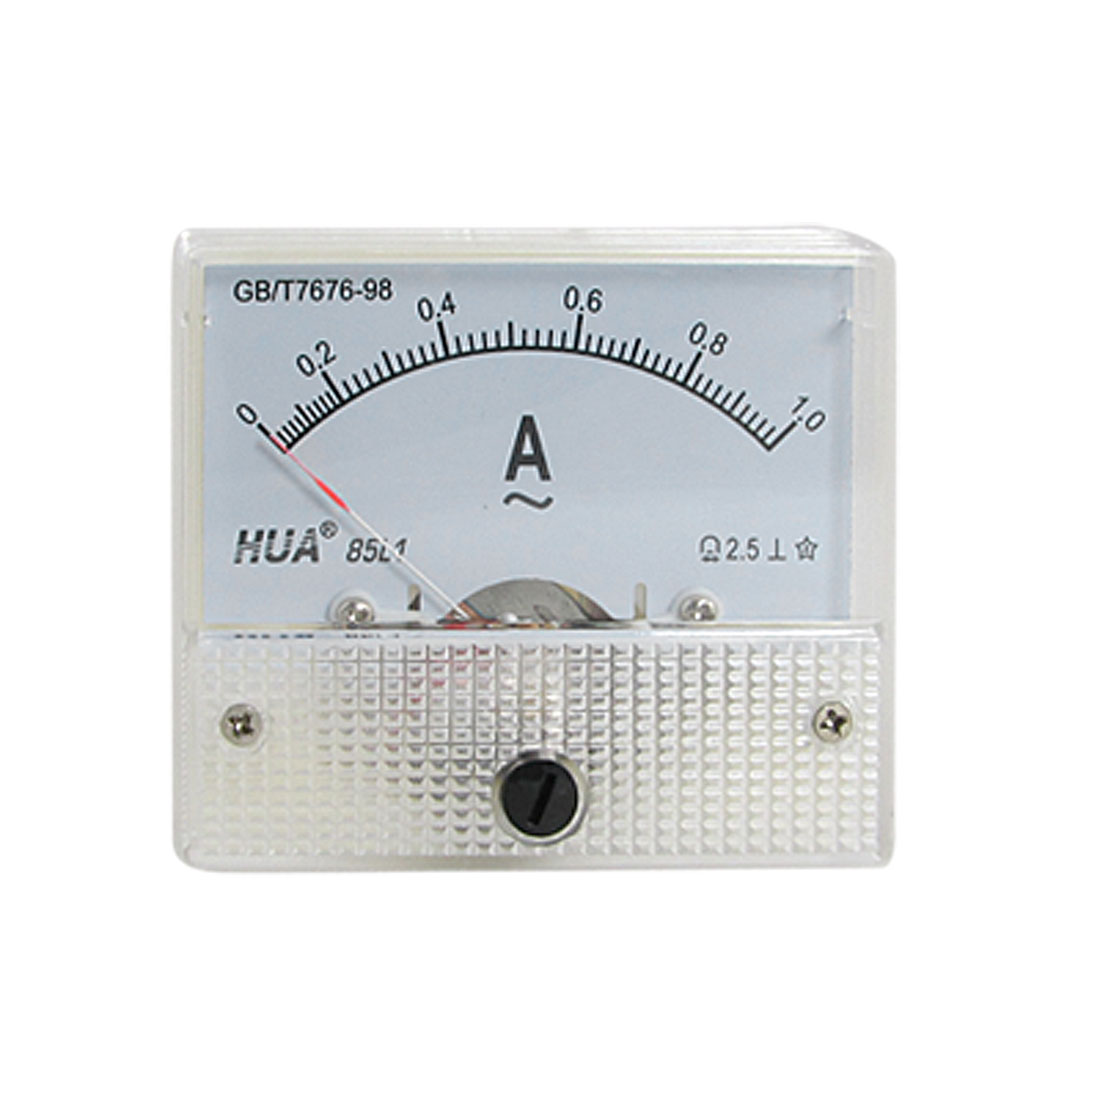 Fine Tuning Dial Panel Ampere Meter Gauge 85L1 AC 0-1A